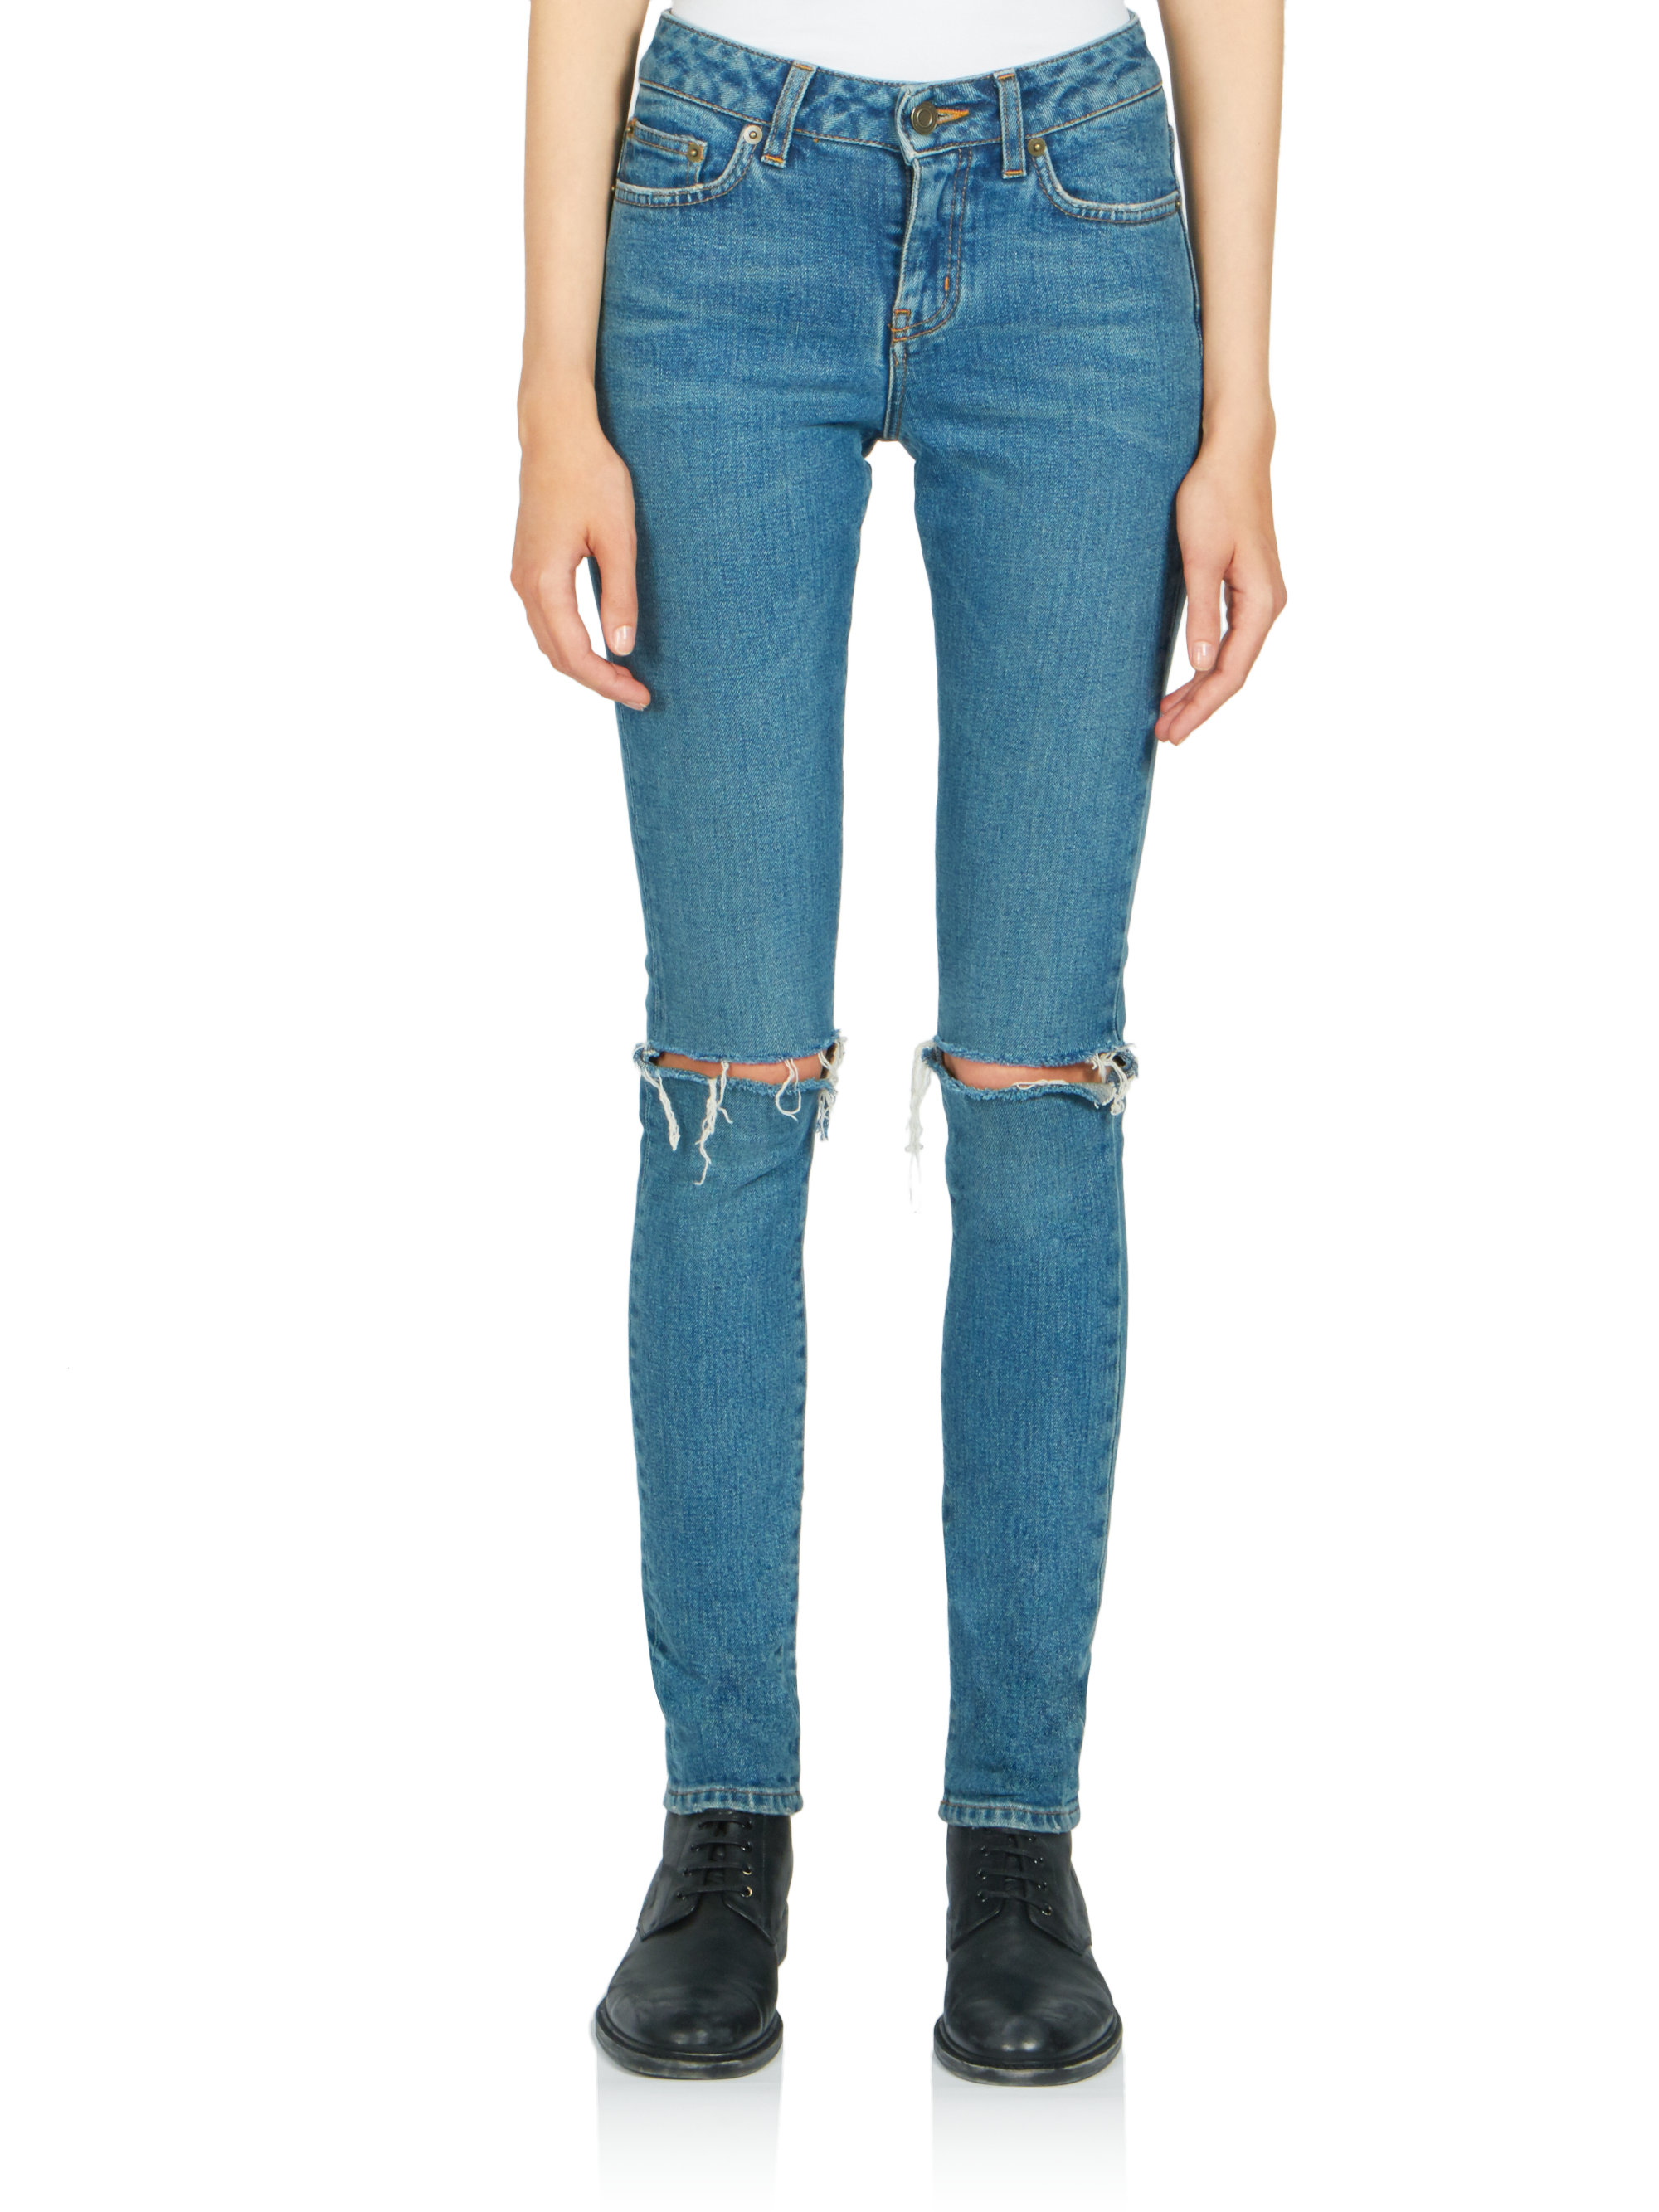 ripped skinny jeans - Blue Saint Laurent Buy Cheap 2018 Low Price From China Free Shipping Low Price Discount Best Place Sale Authentic ghewQw